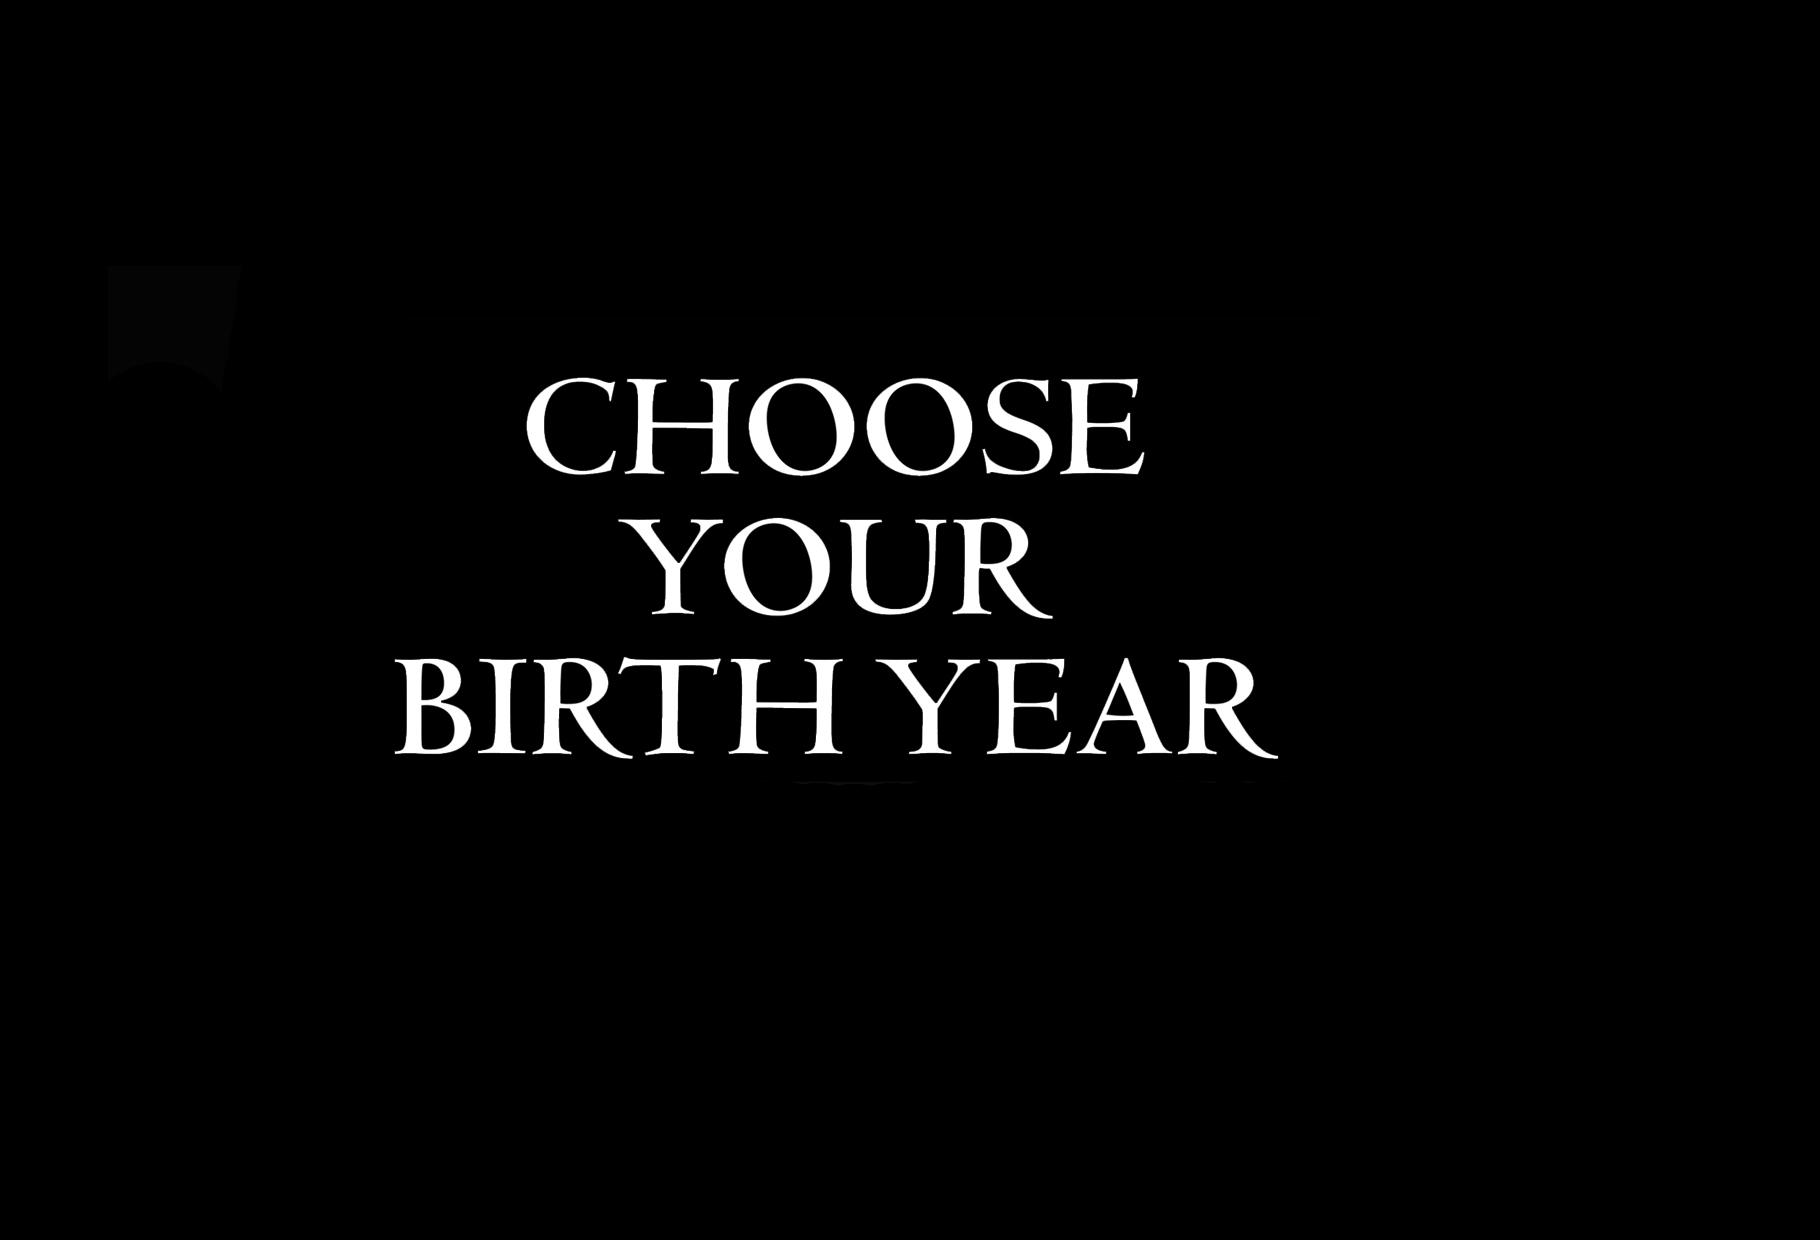 Choose your birthyear